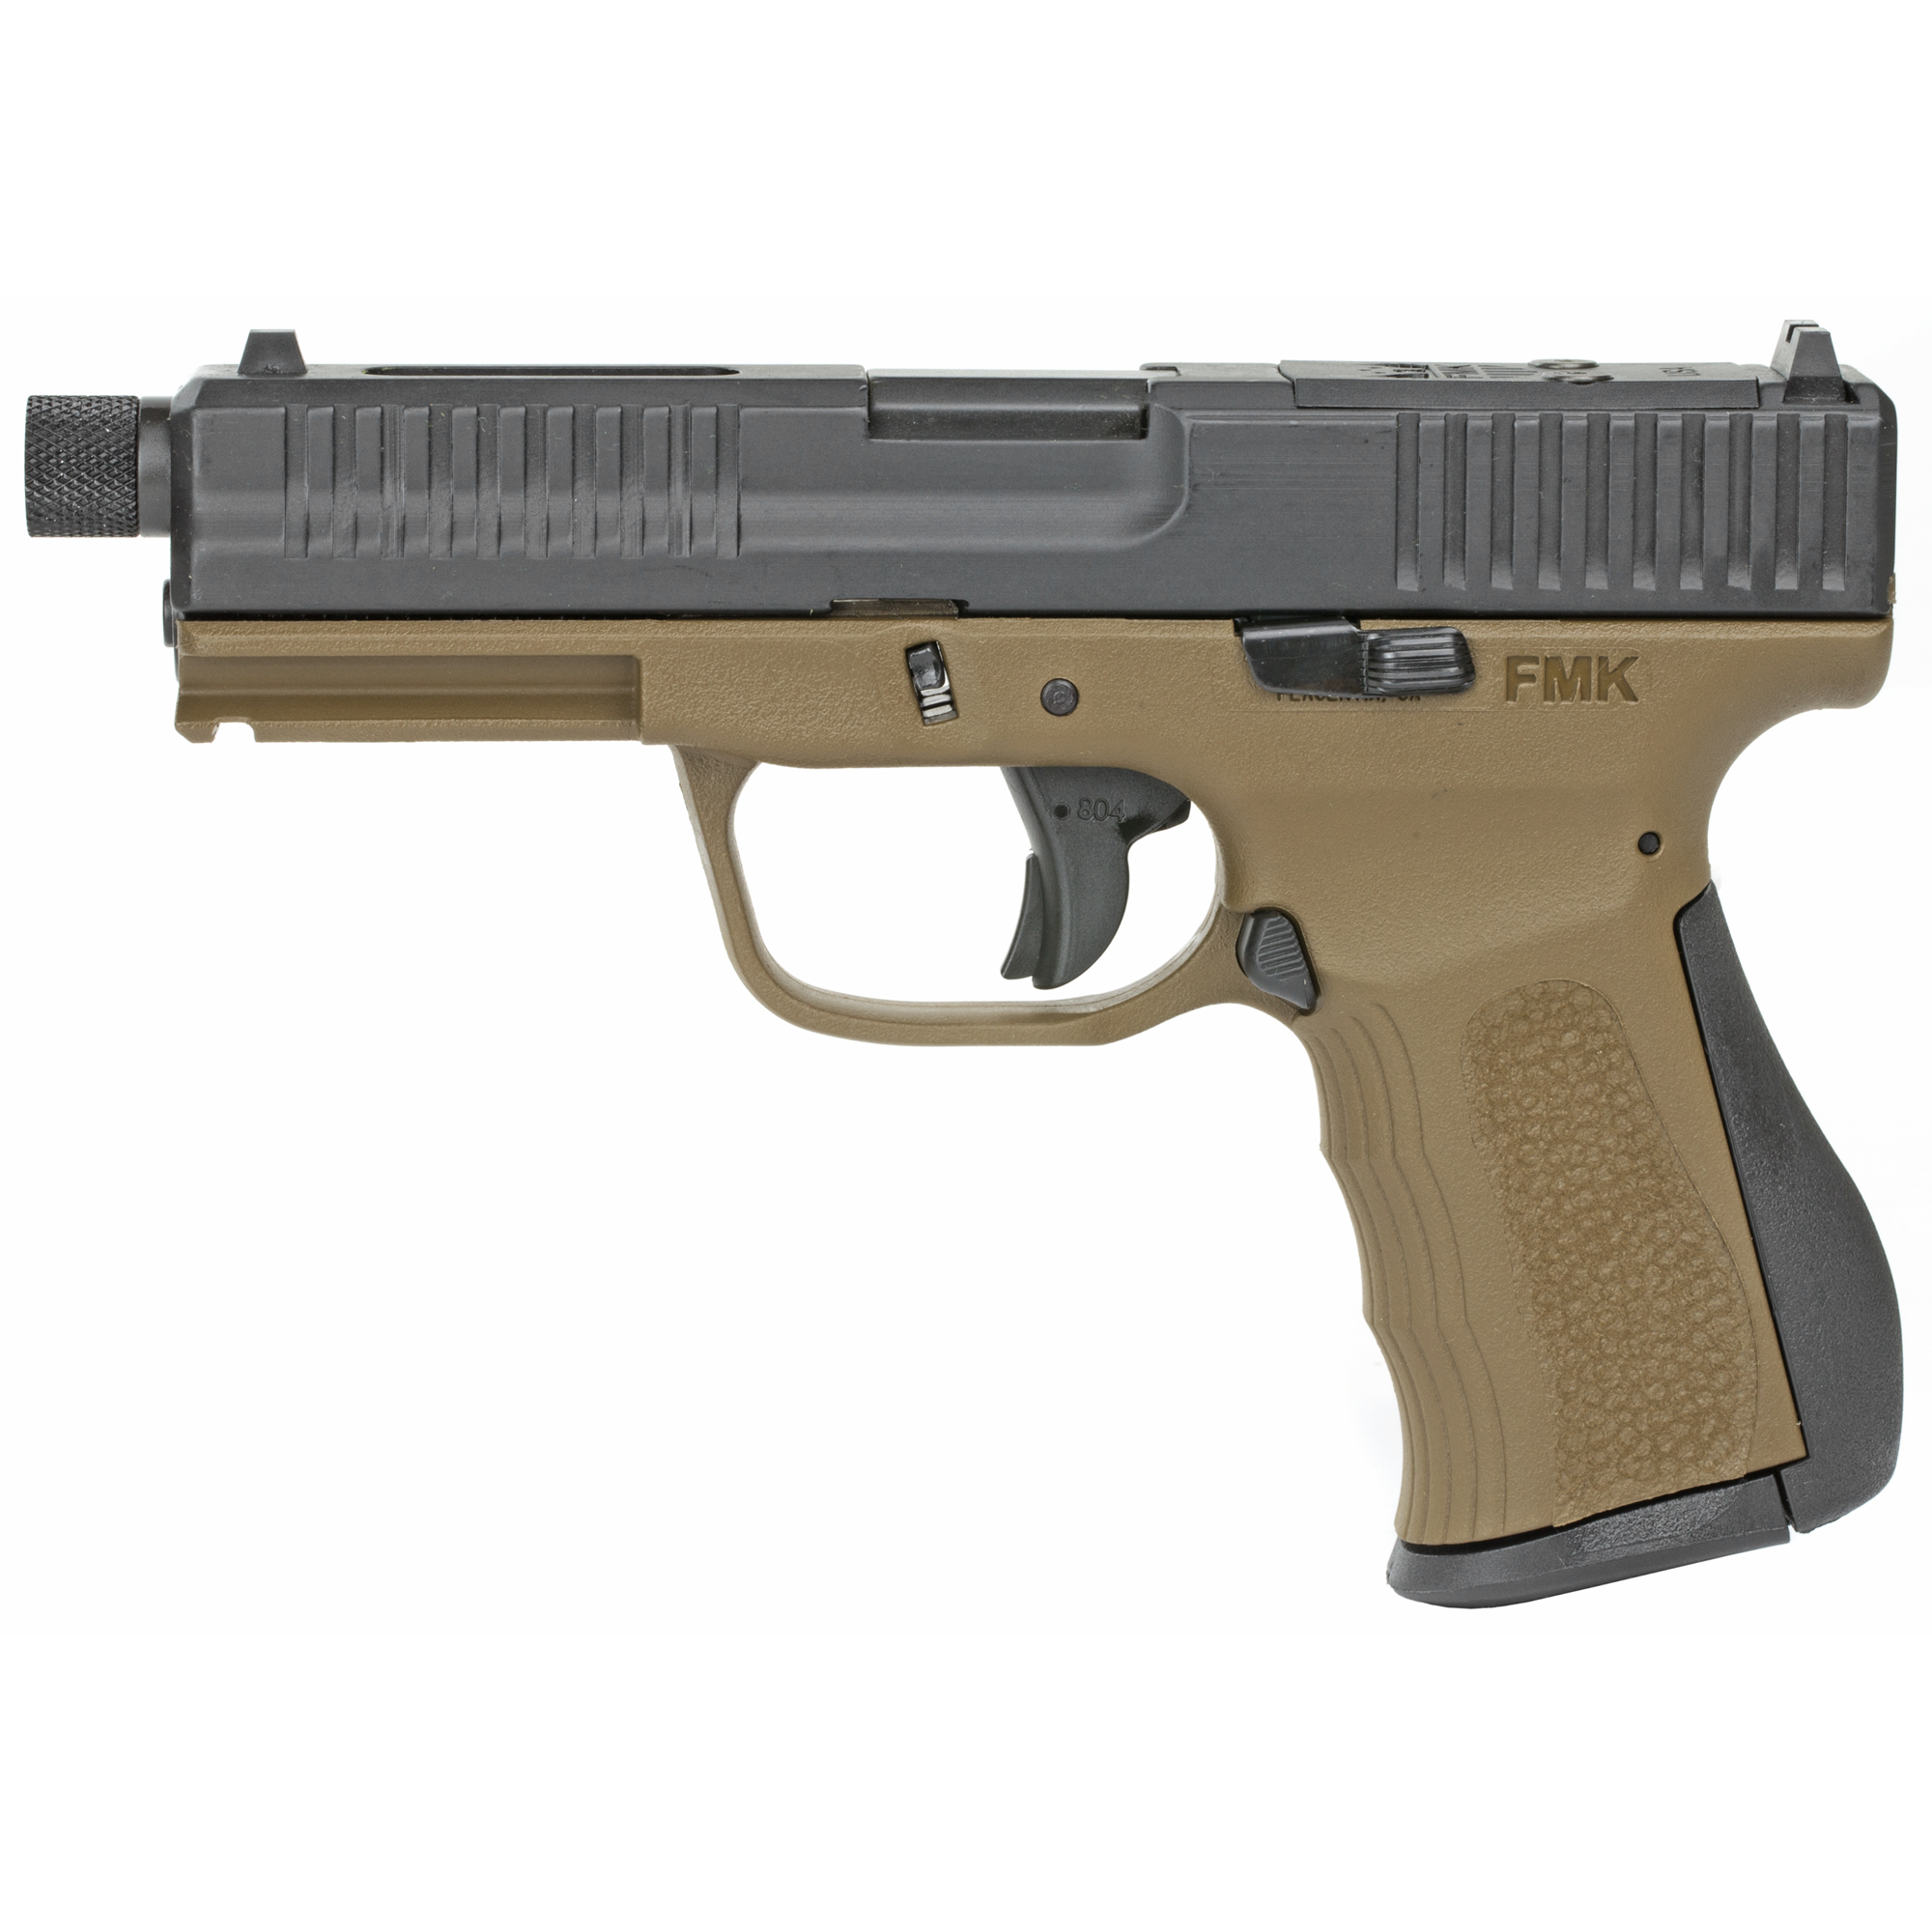 """The FMK ELITE 9mm is ergonomically built to comfortably fit both large and small hands. The barrel is engineered to sit low for superior point and shoot accuracy and reduced muzzle flip. The new custom designed slide allows mounting of any Vortex Viper"""" Venom or Trijicon RMR optic right to the slide without any mounting plates!"""